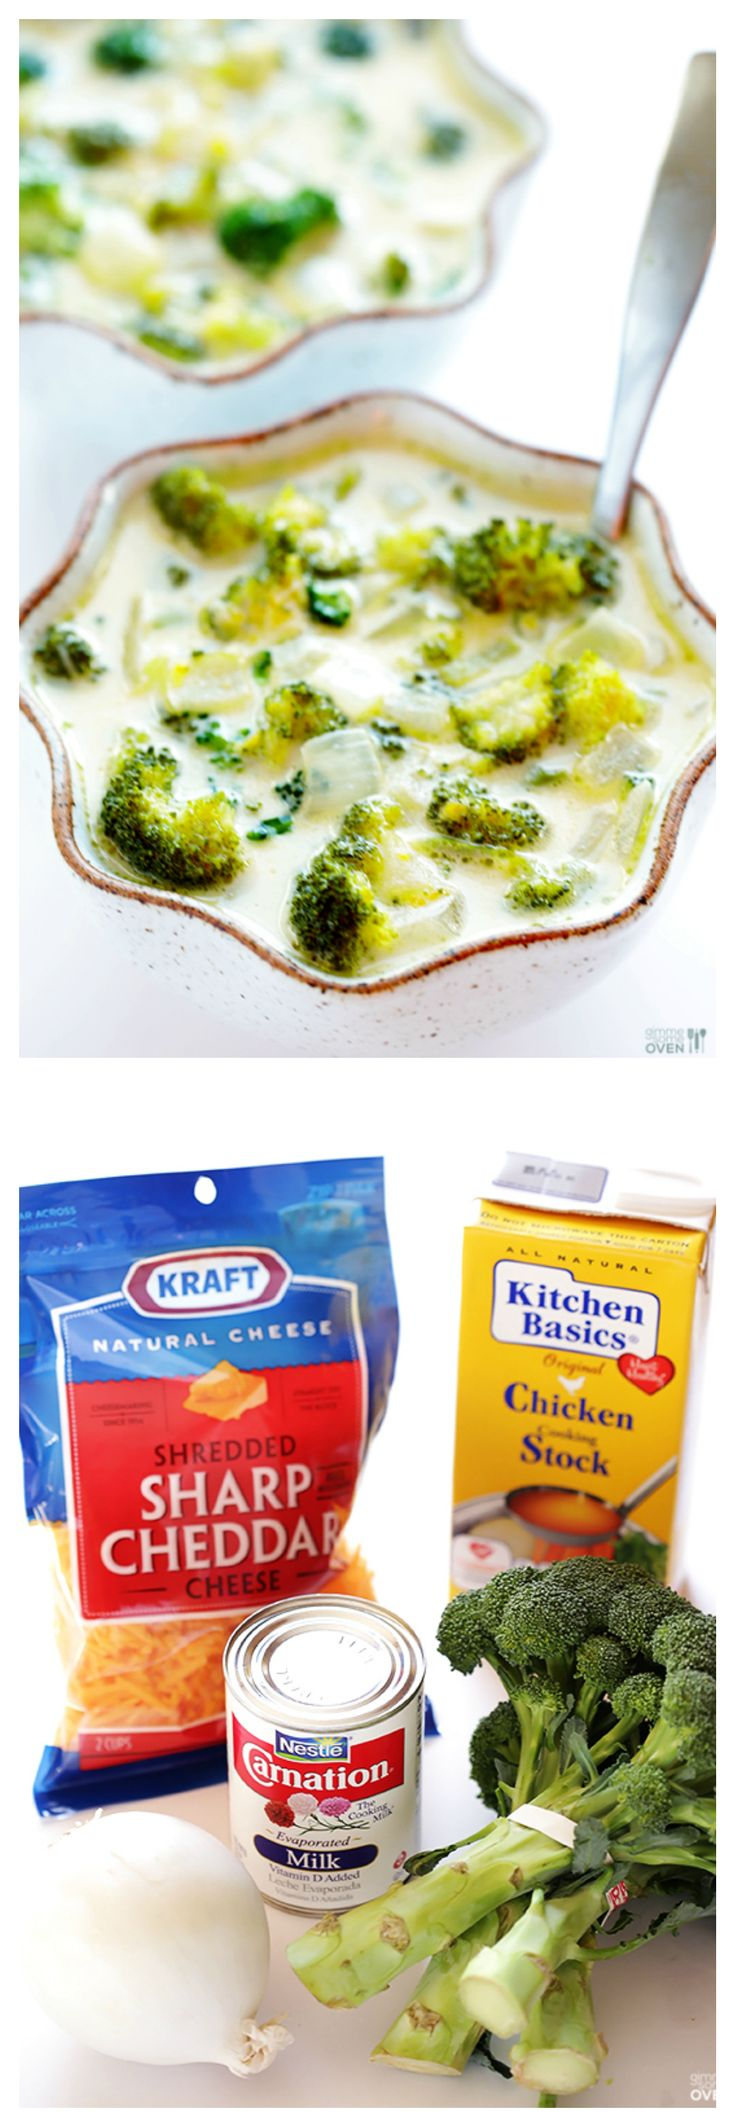 5-Ingredient Broccoli Cheese Soup -- super easy to make, and so warm and comforting!   gimmesomeoven.com #soup